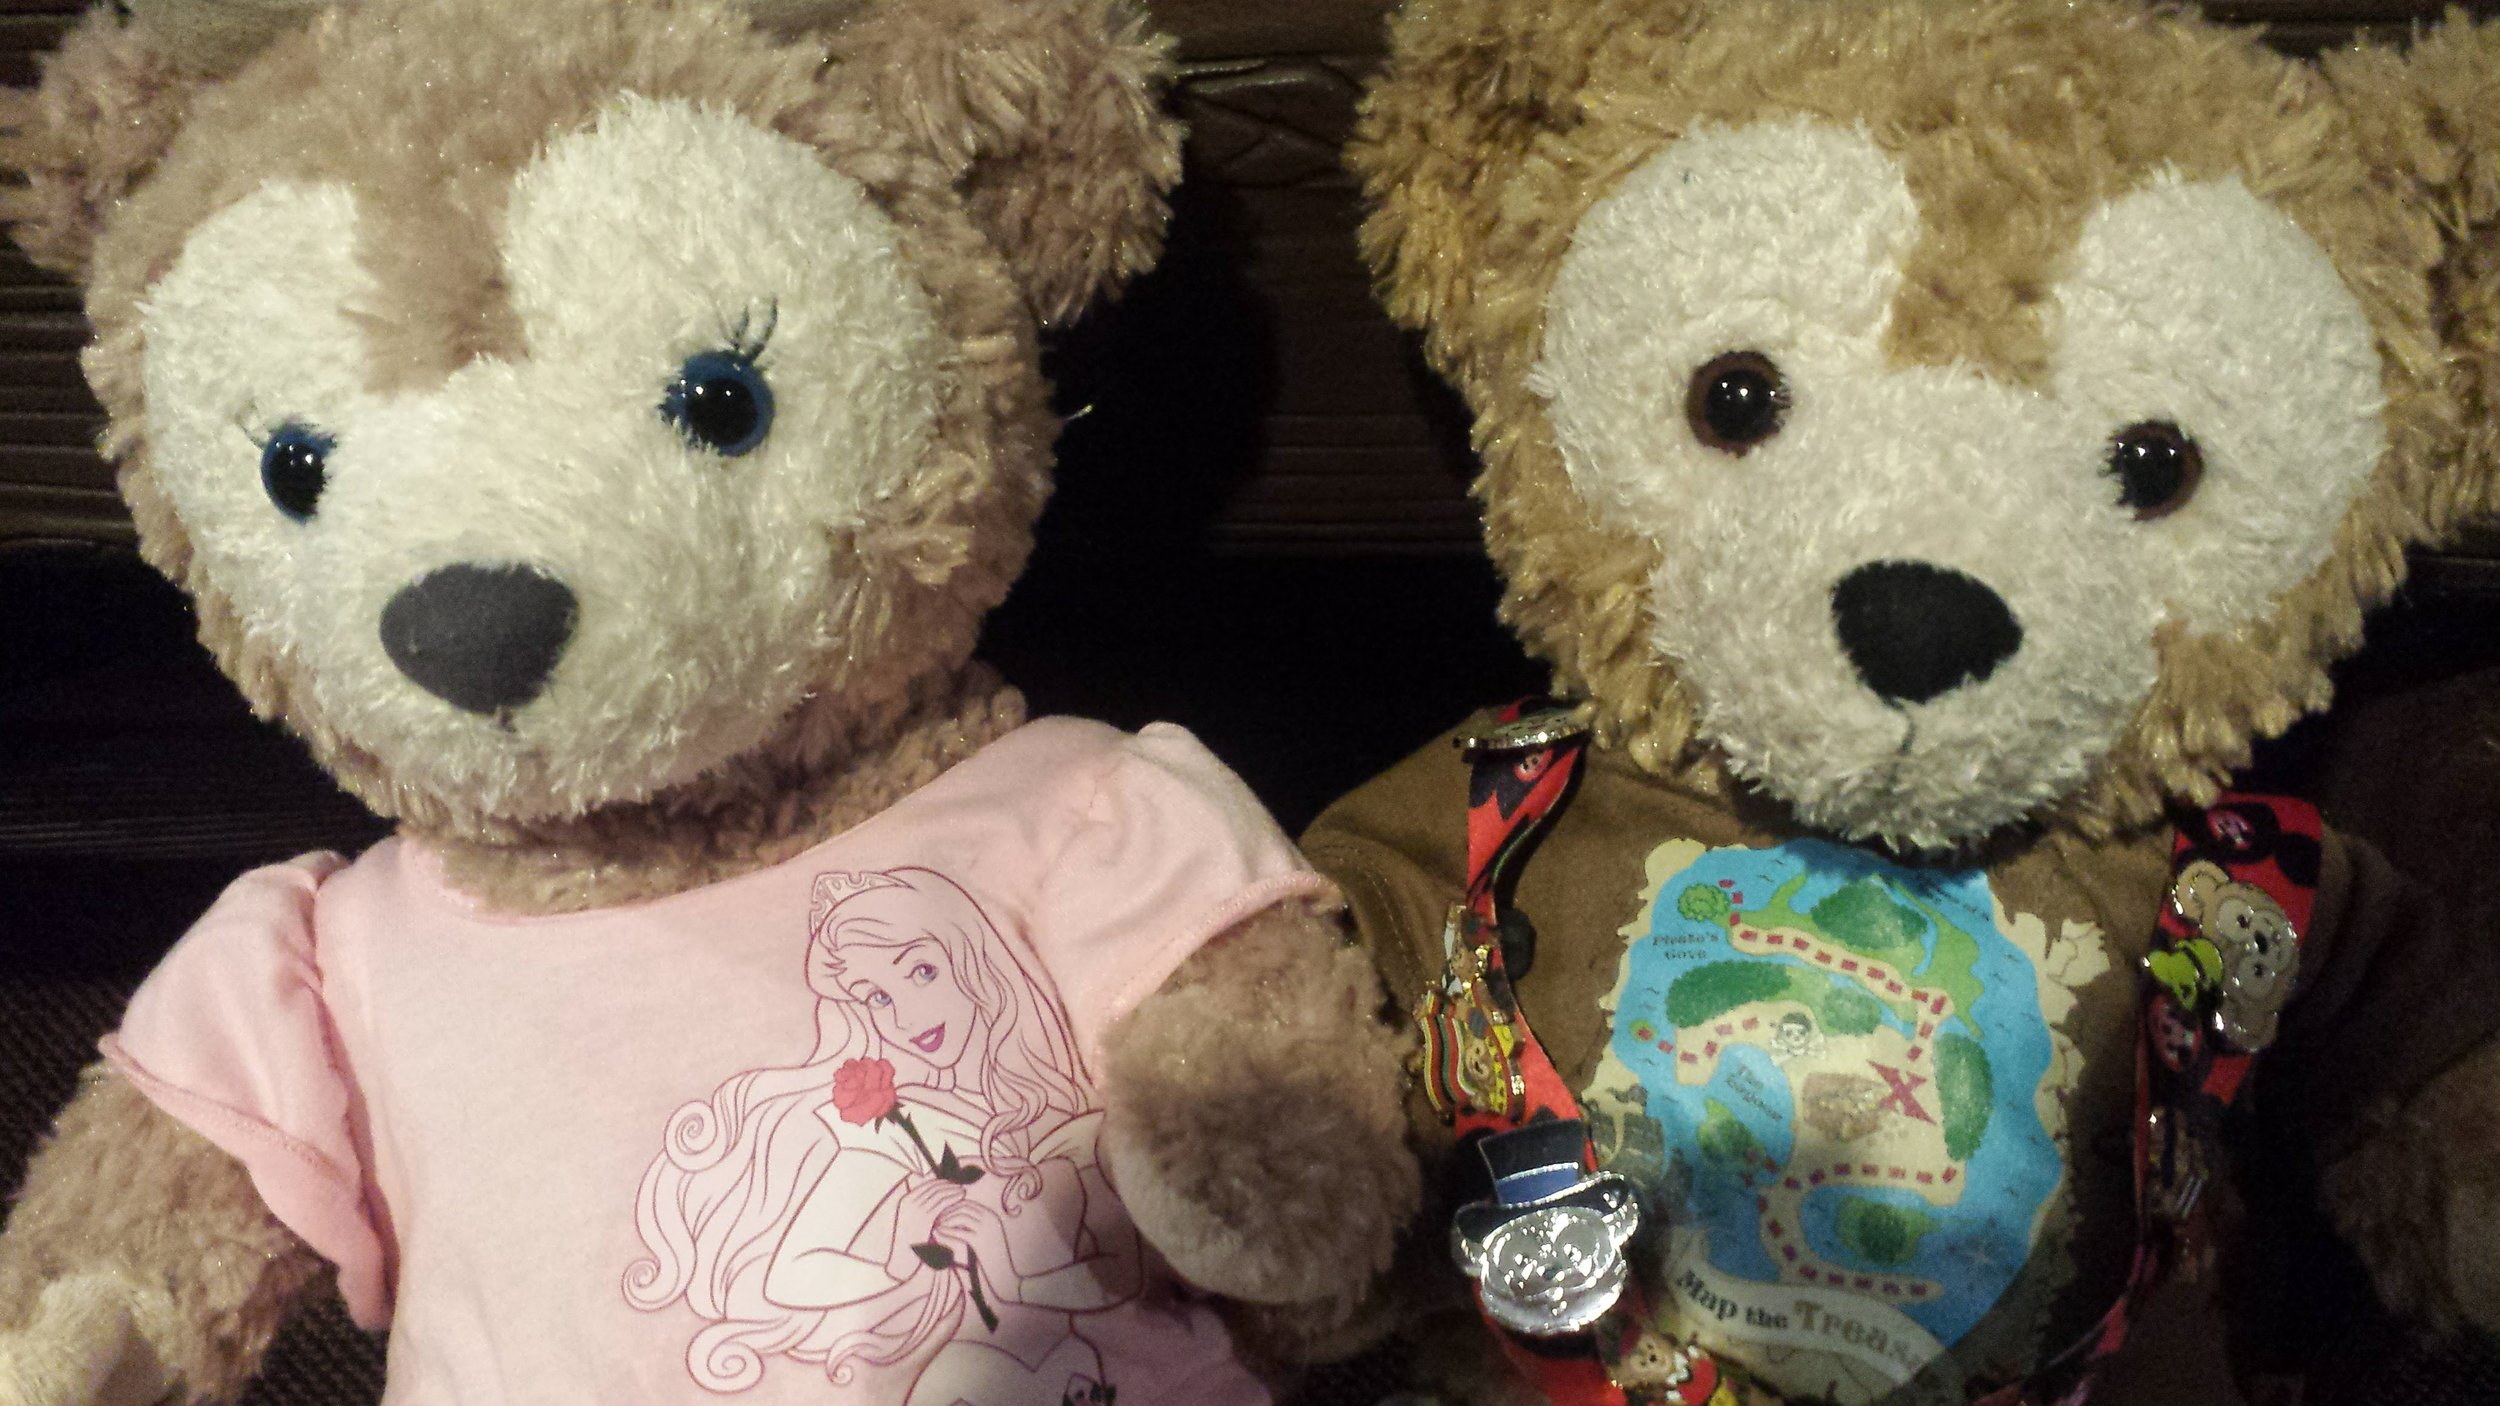 ShellieMay was in her Sleeping Beauty outfit, while Duffy had a treasure map on his t-shirt!